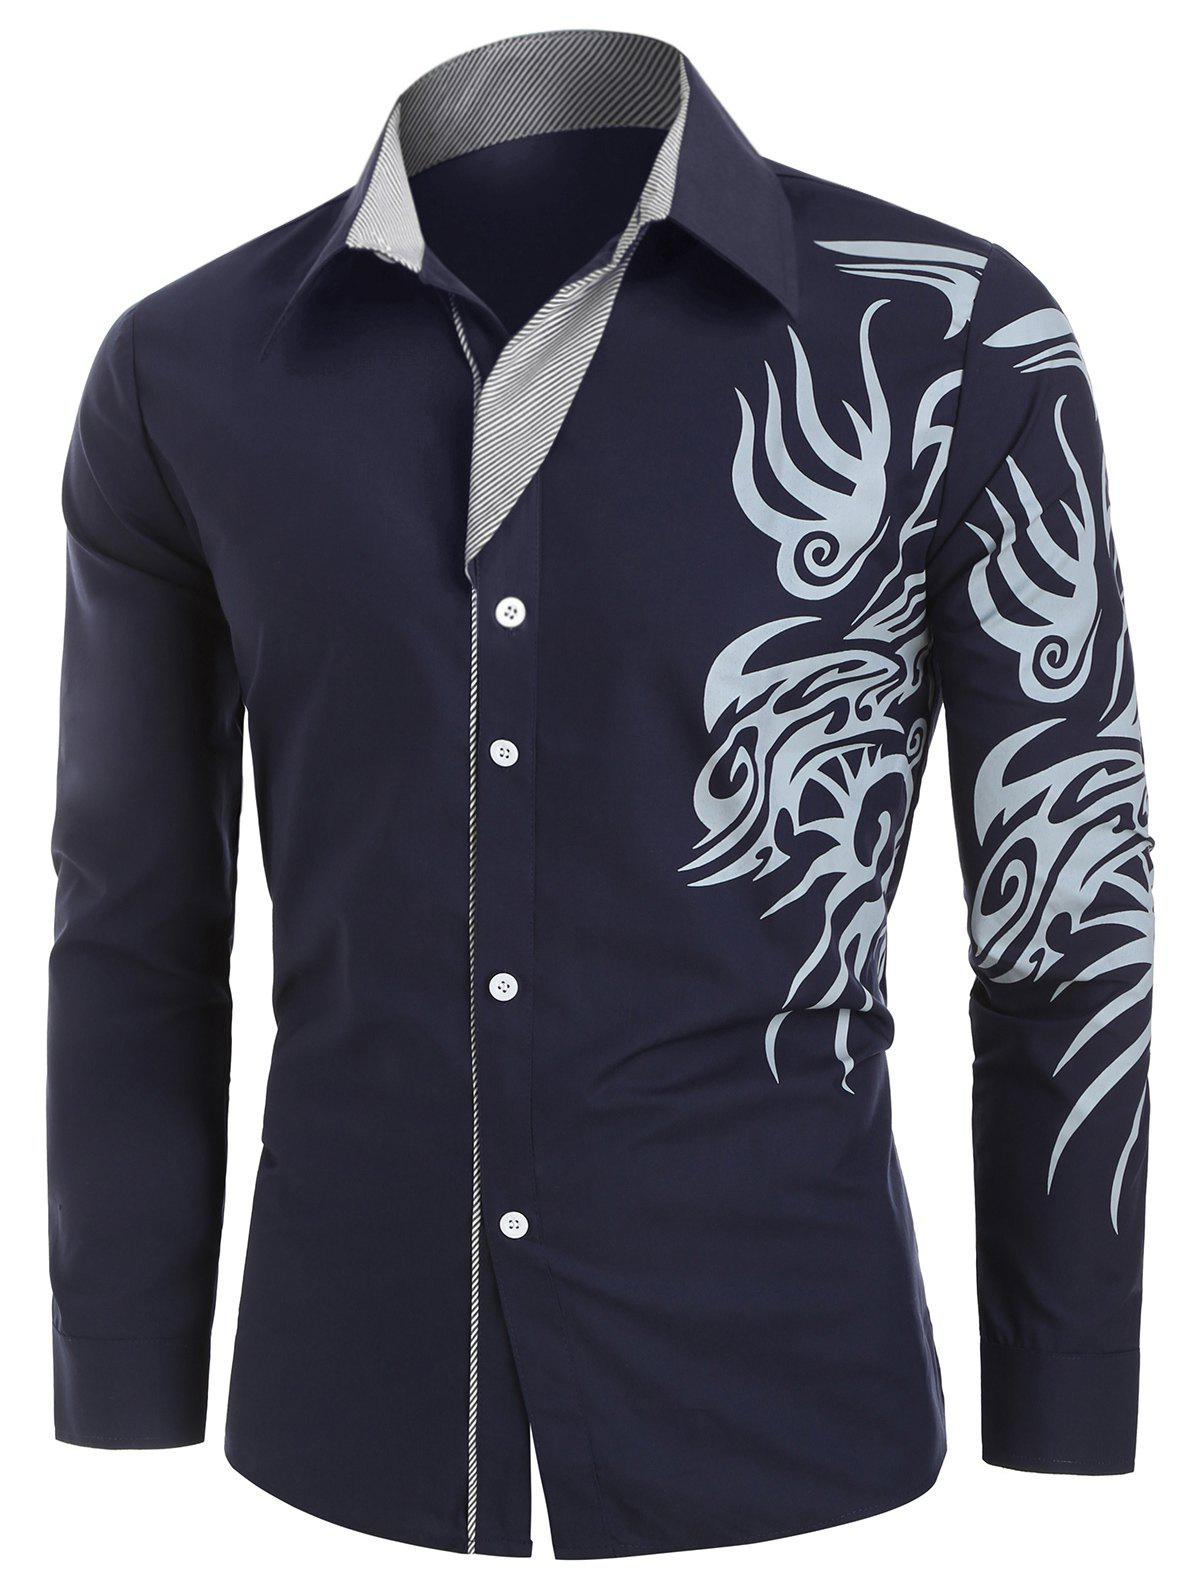 Tattoo Print Button Up Long Sleeve Shirt - CADETBLUE XL